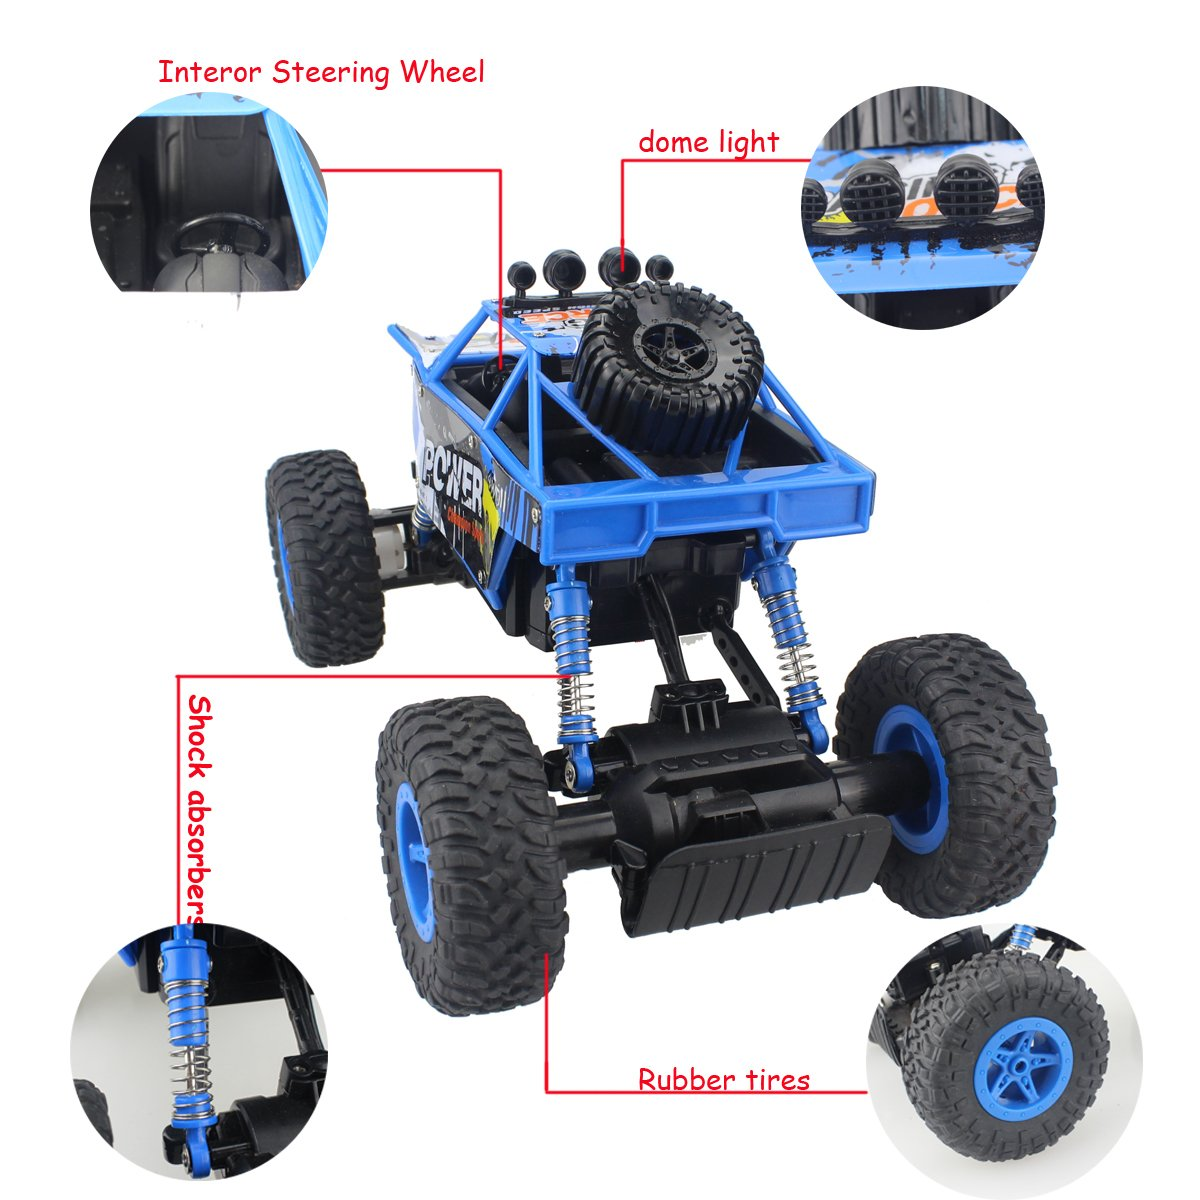 Fisca RC Car Remote Control Rock Crawler High Speed 4WD Off-Road Vehicle, 2.4Ghz 1:18 Dune Buggy Monster Truck Electric Hobby Fast Race Car with Rechargeable Battery Blue